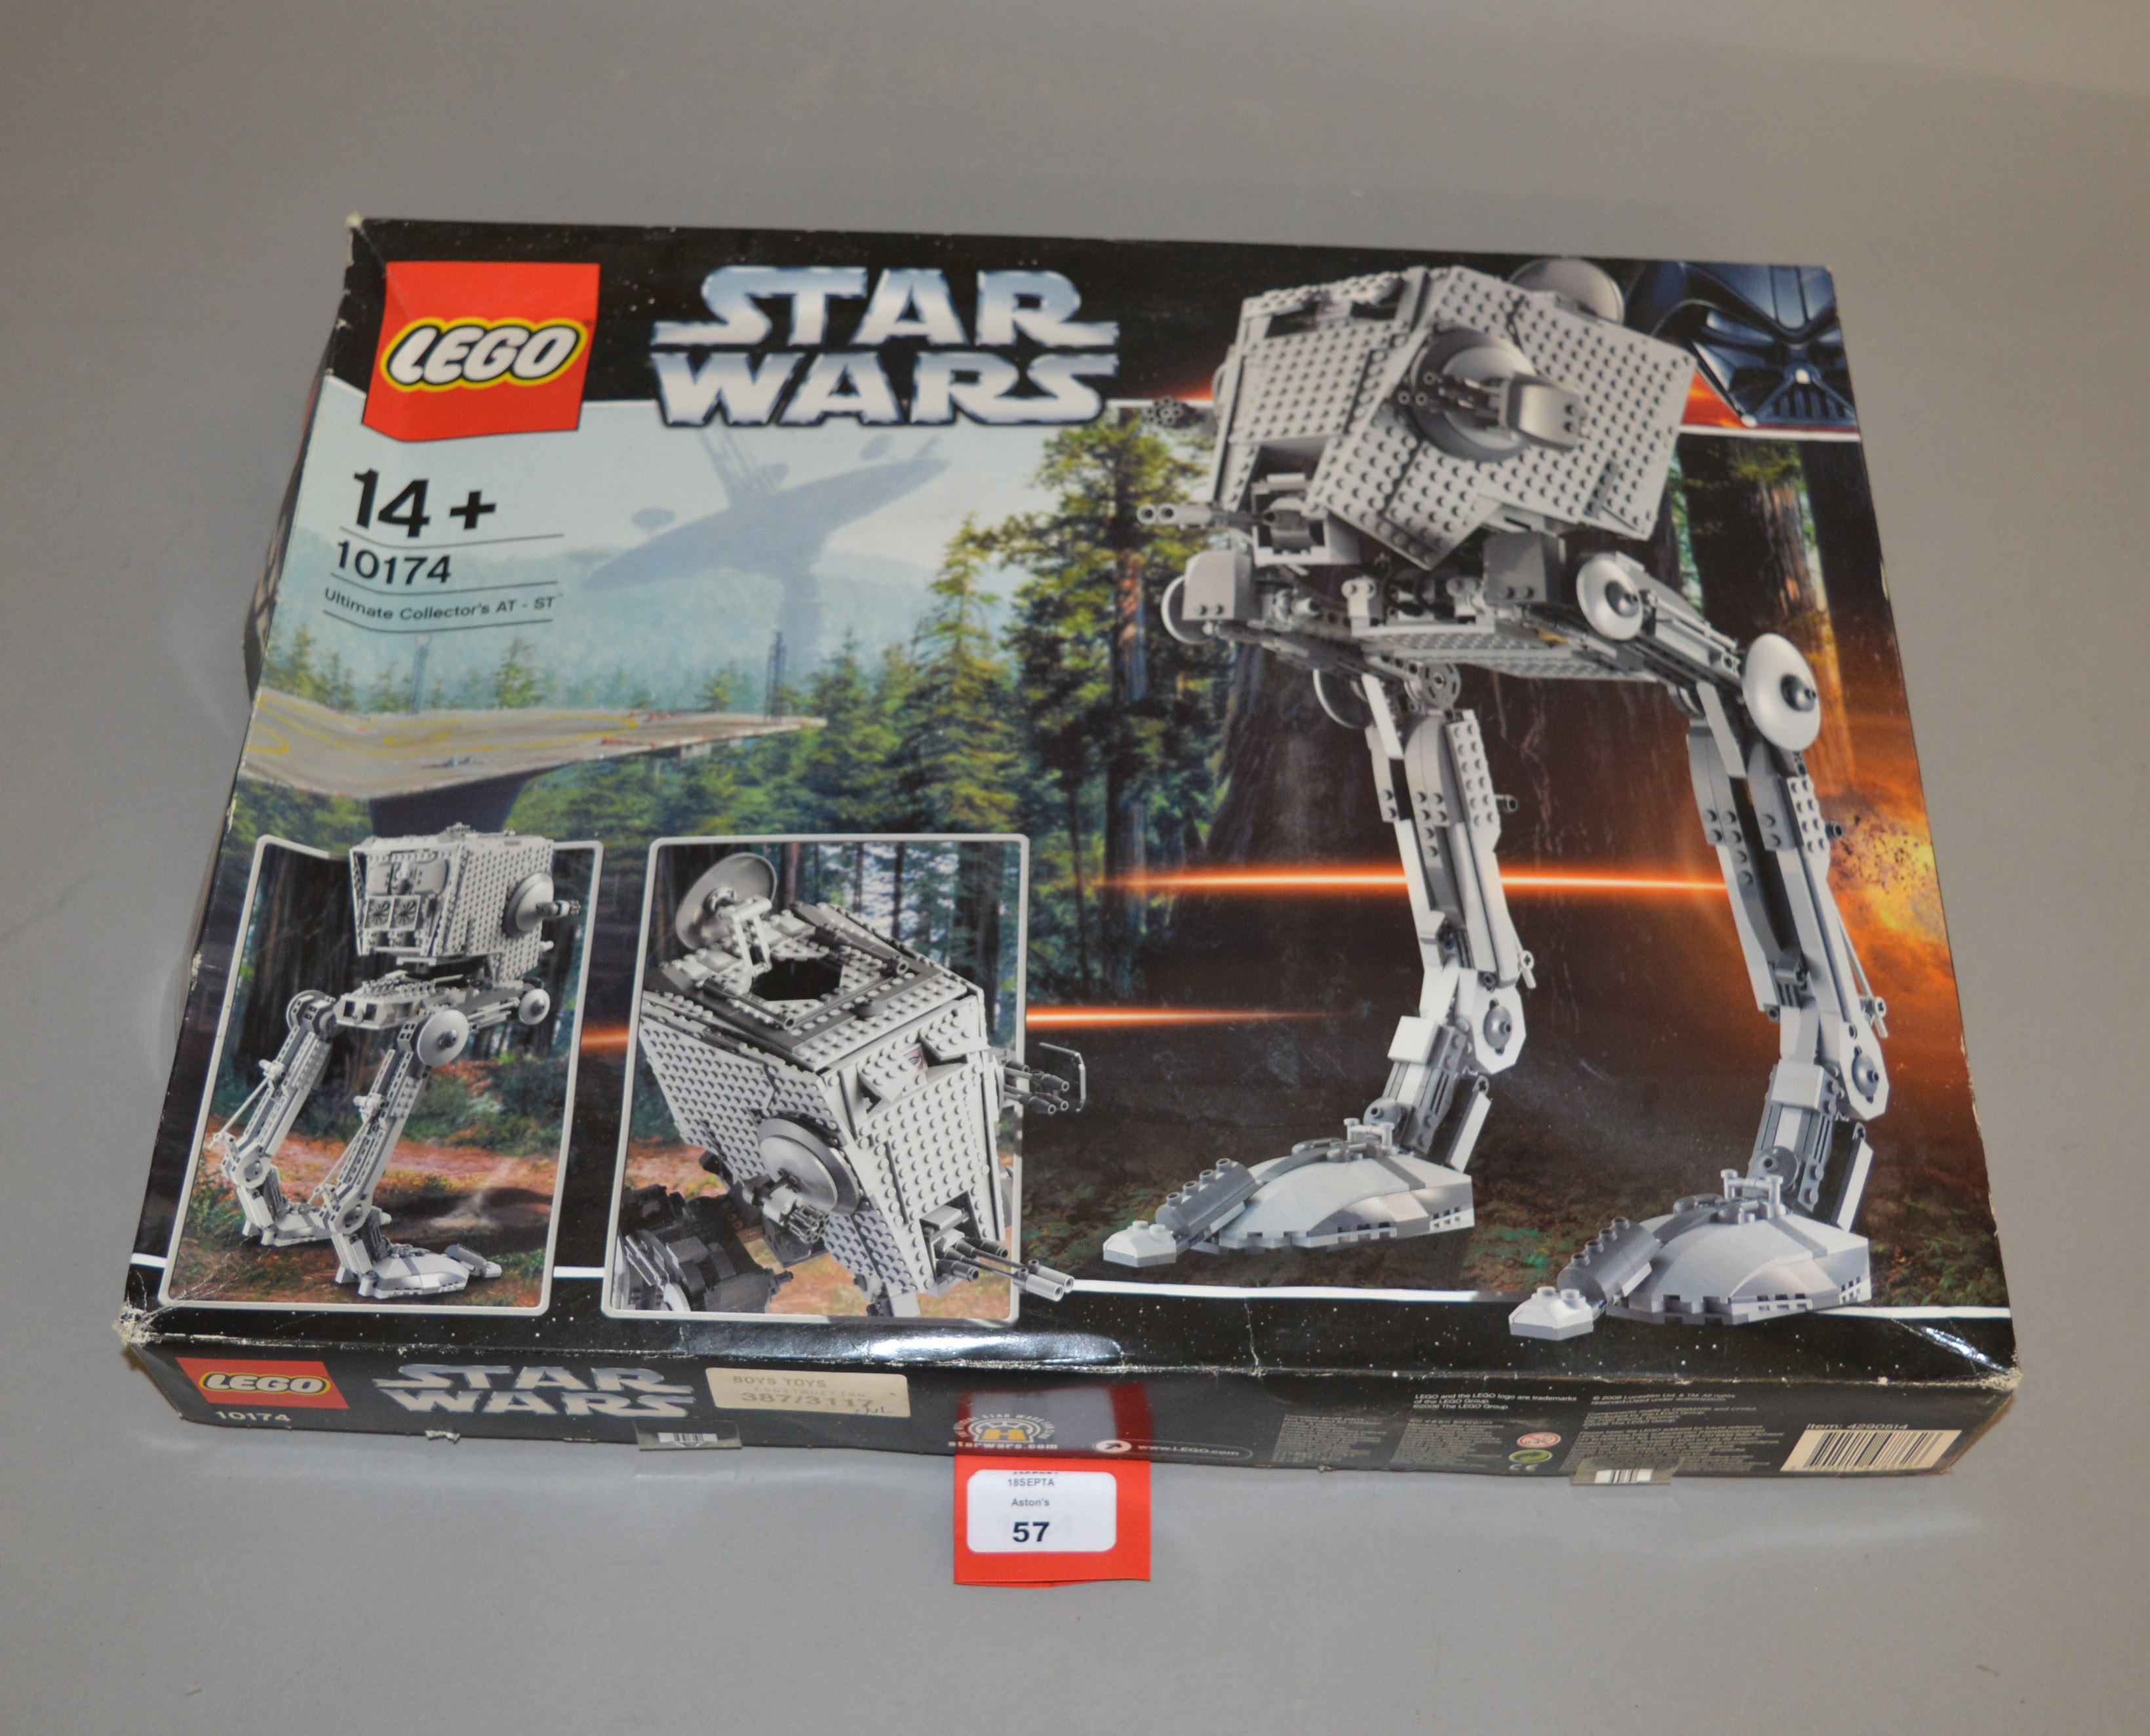 Lot 57 - Lego Star Wars 10174 'Ultimate Collector's AT-ST', sealed in generally F/G box with undulation,